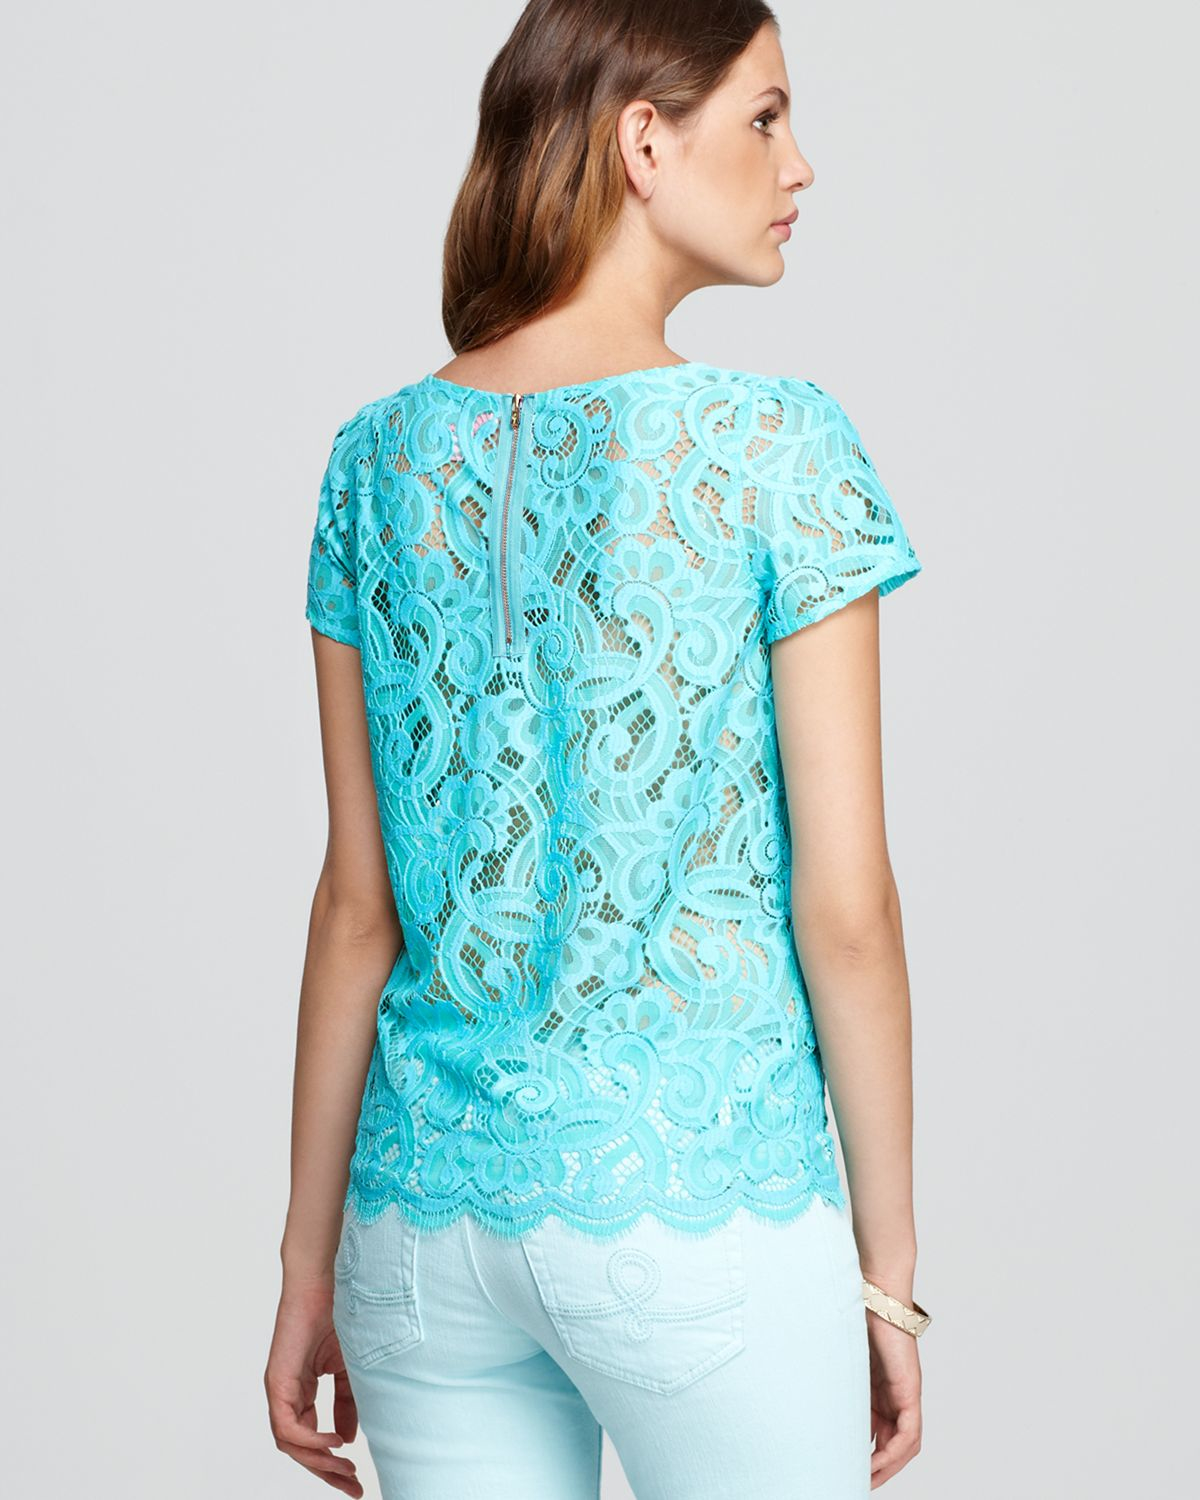 Lilly Pulitzer Poppy Lace Top in Green - Lyst